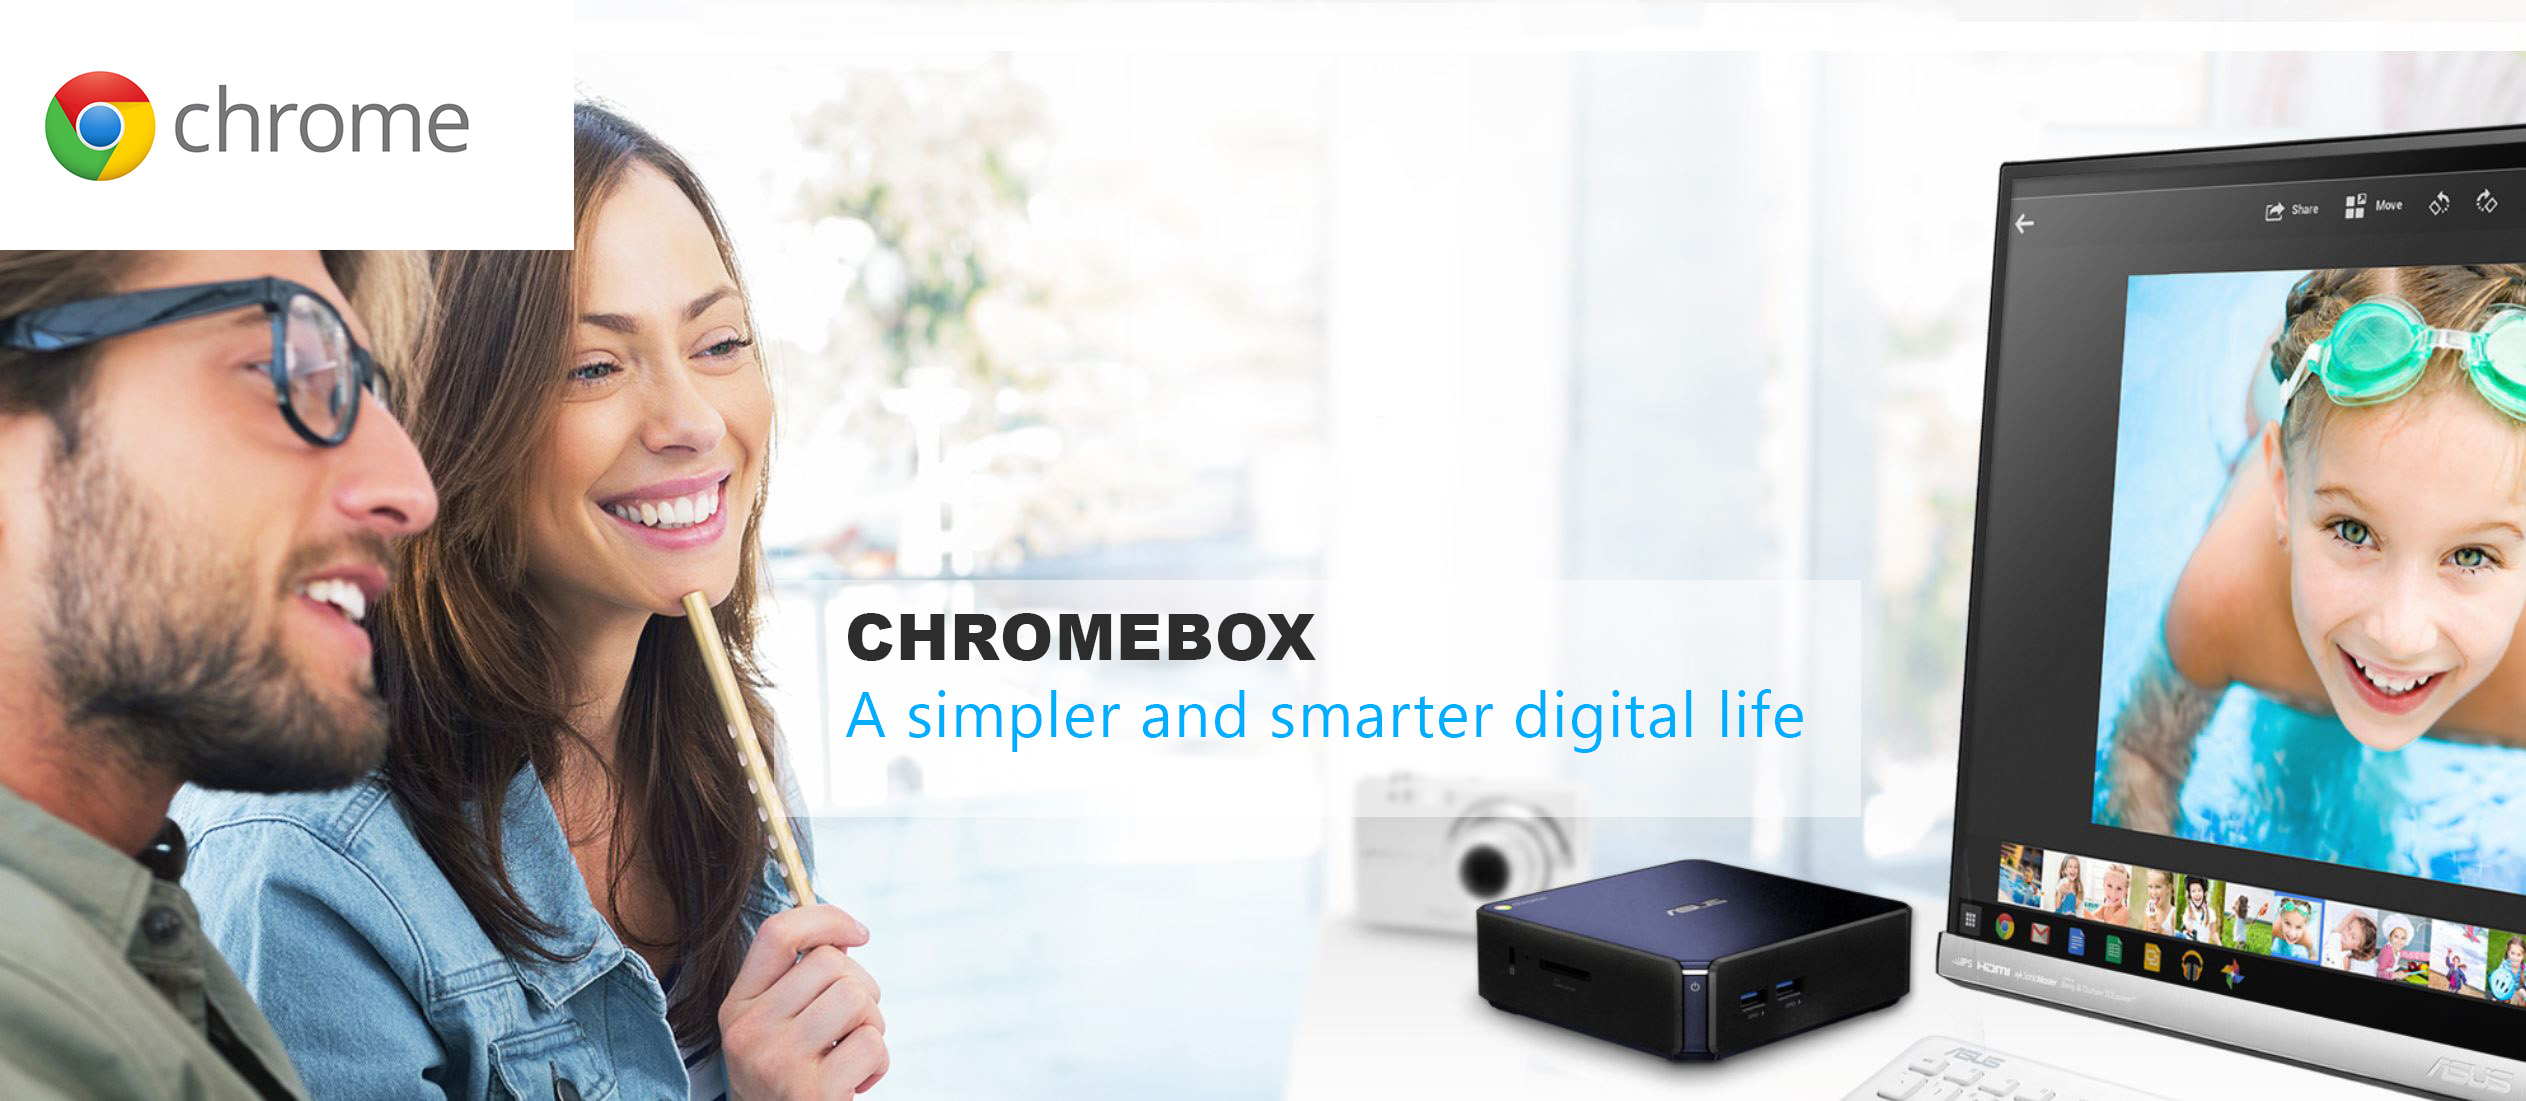 chromebox-2.jpg